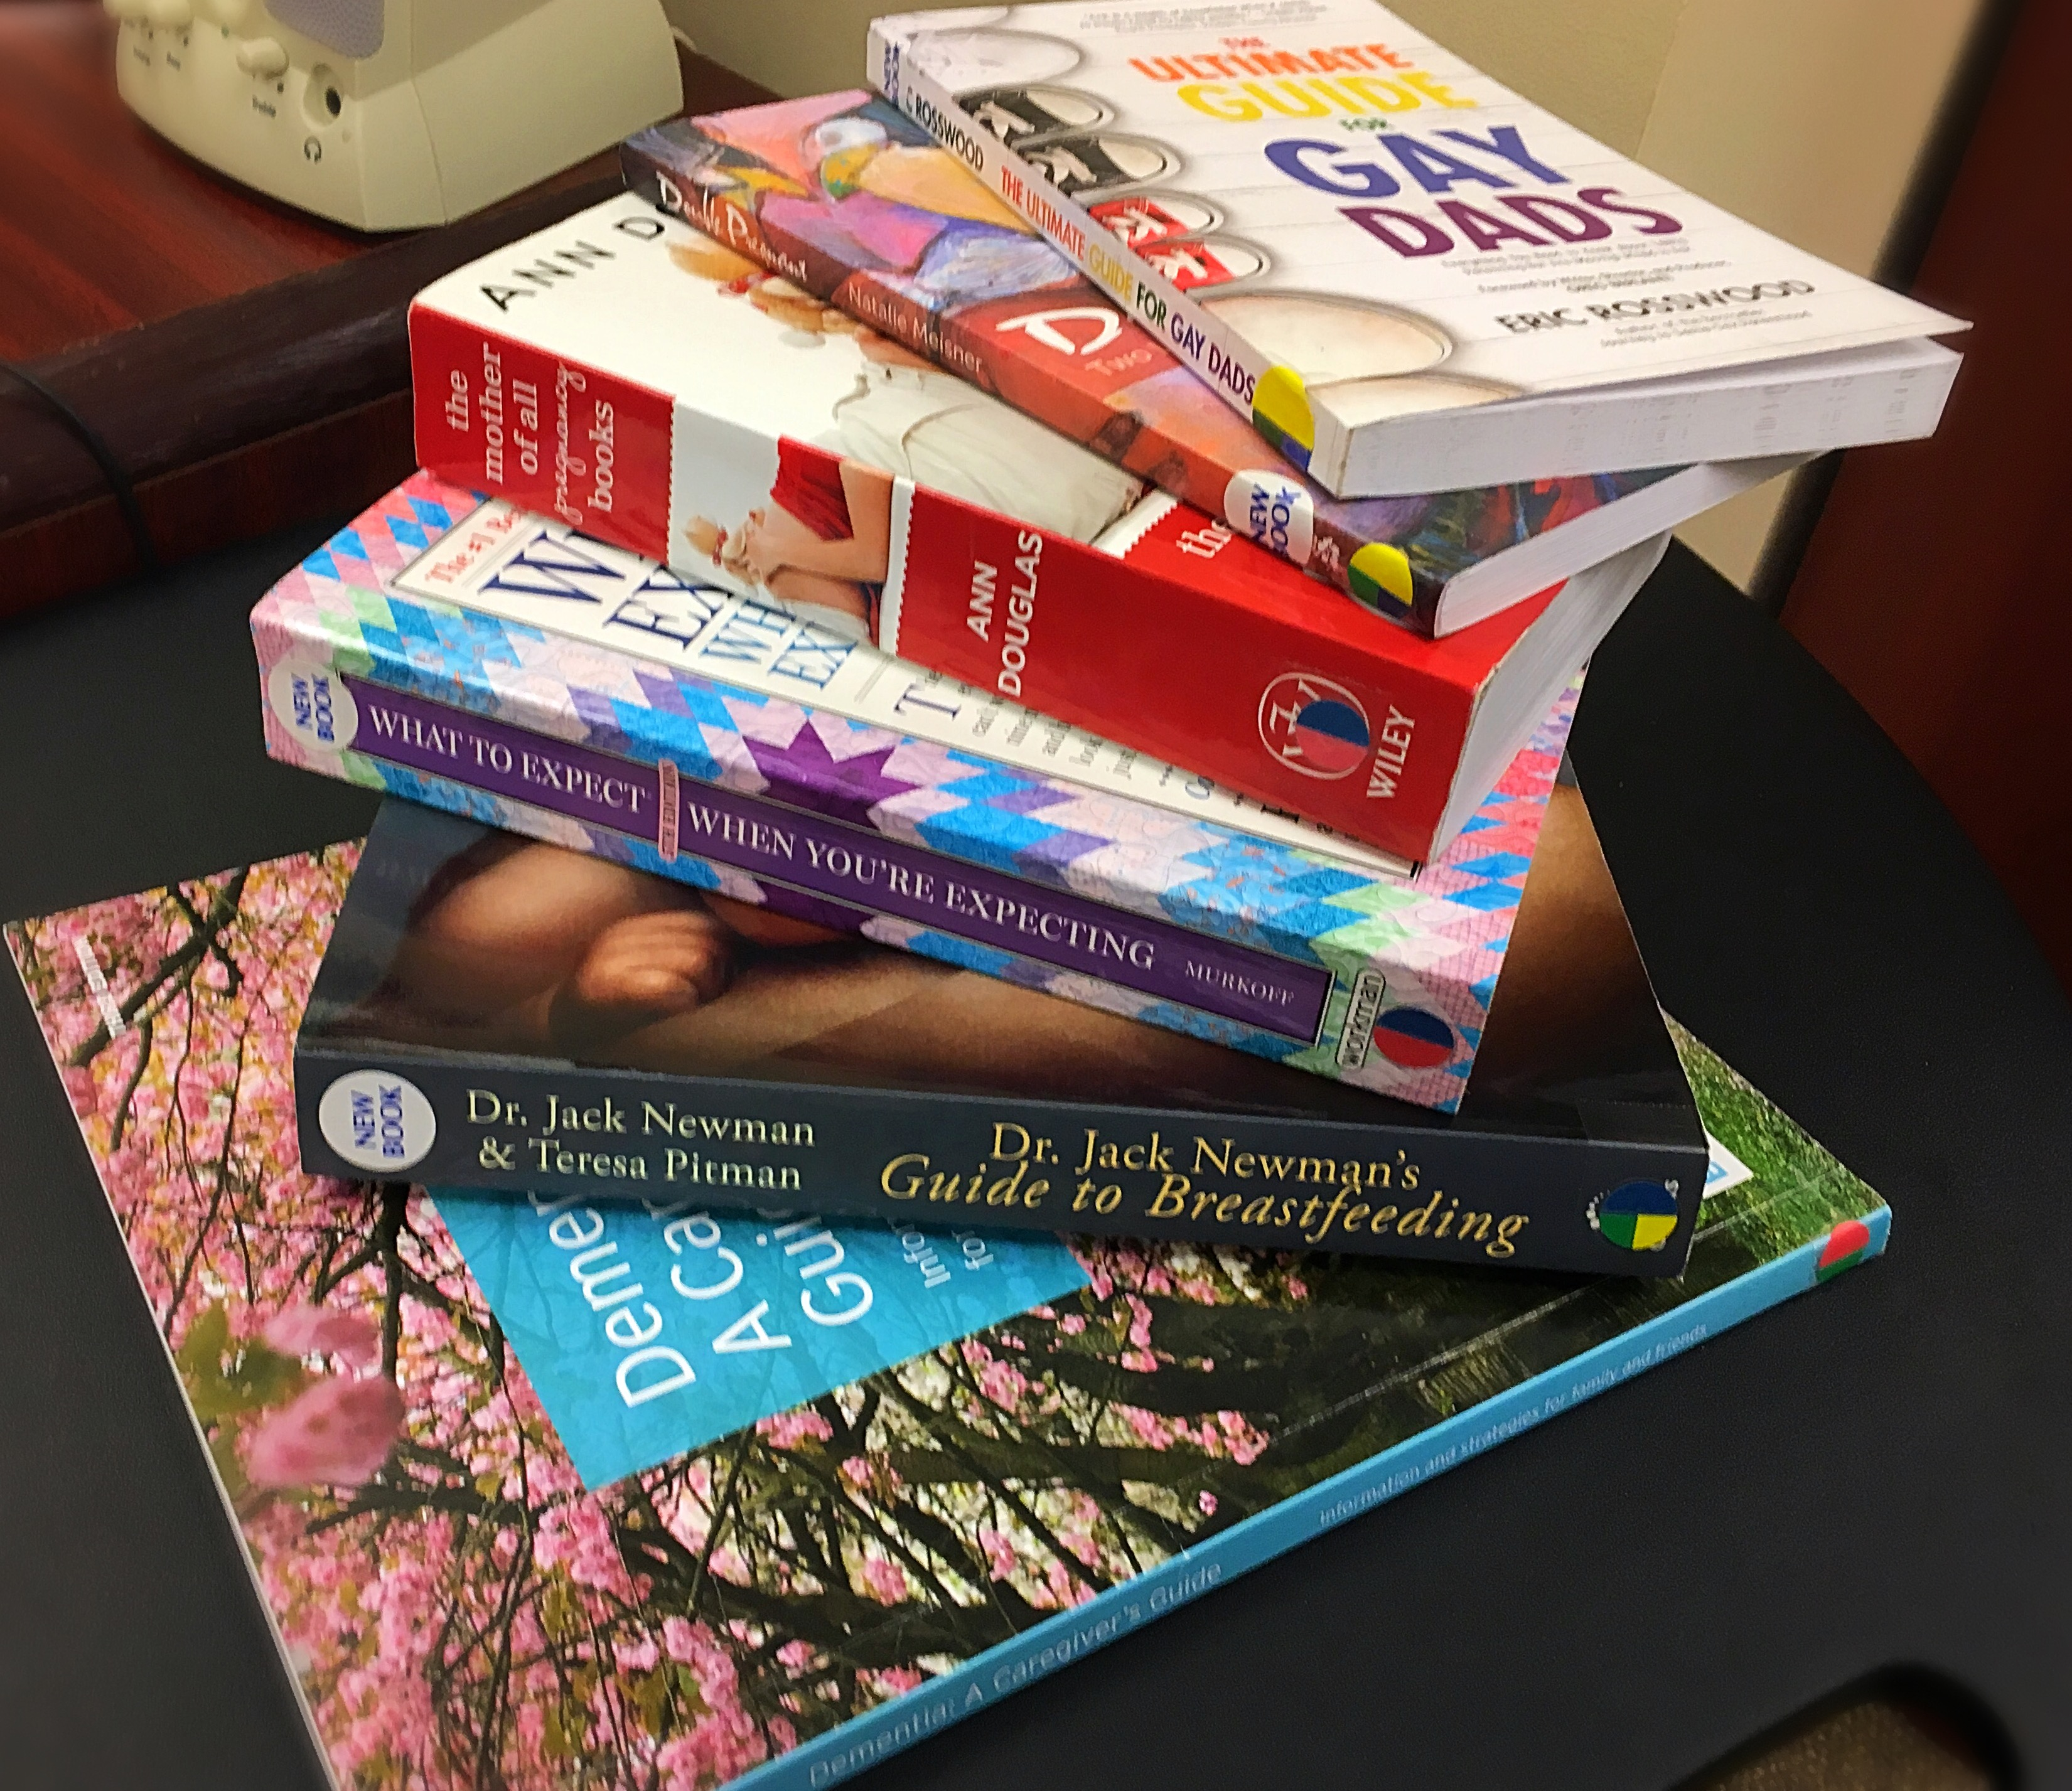 image of books from Family Care Office